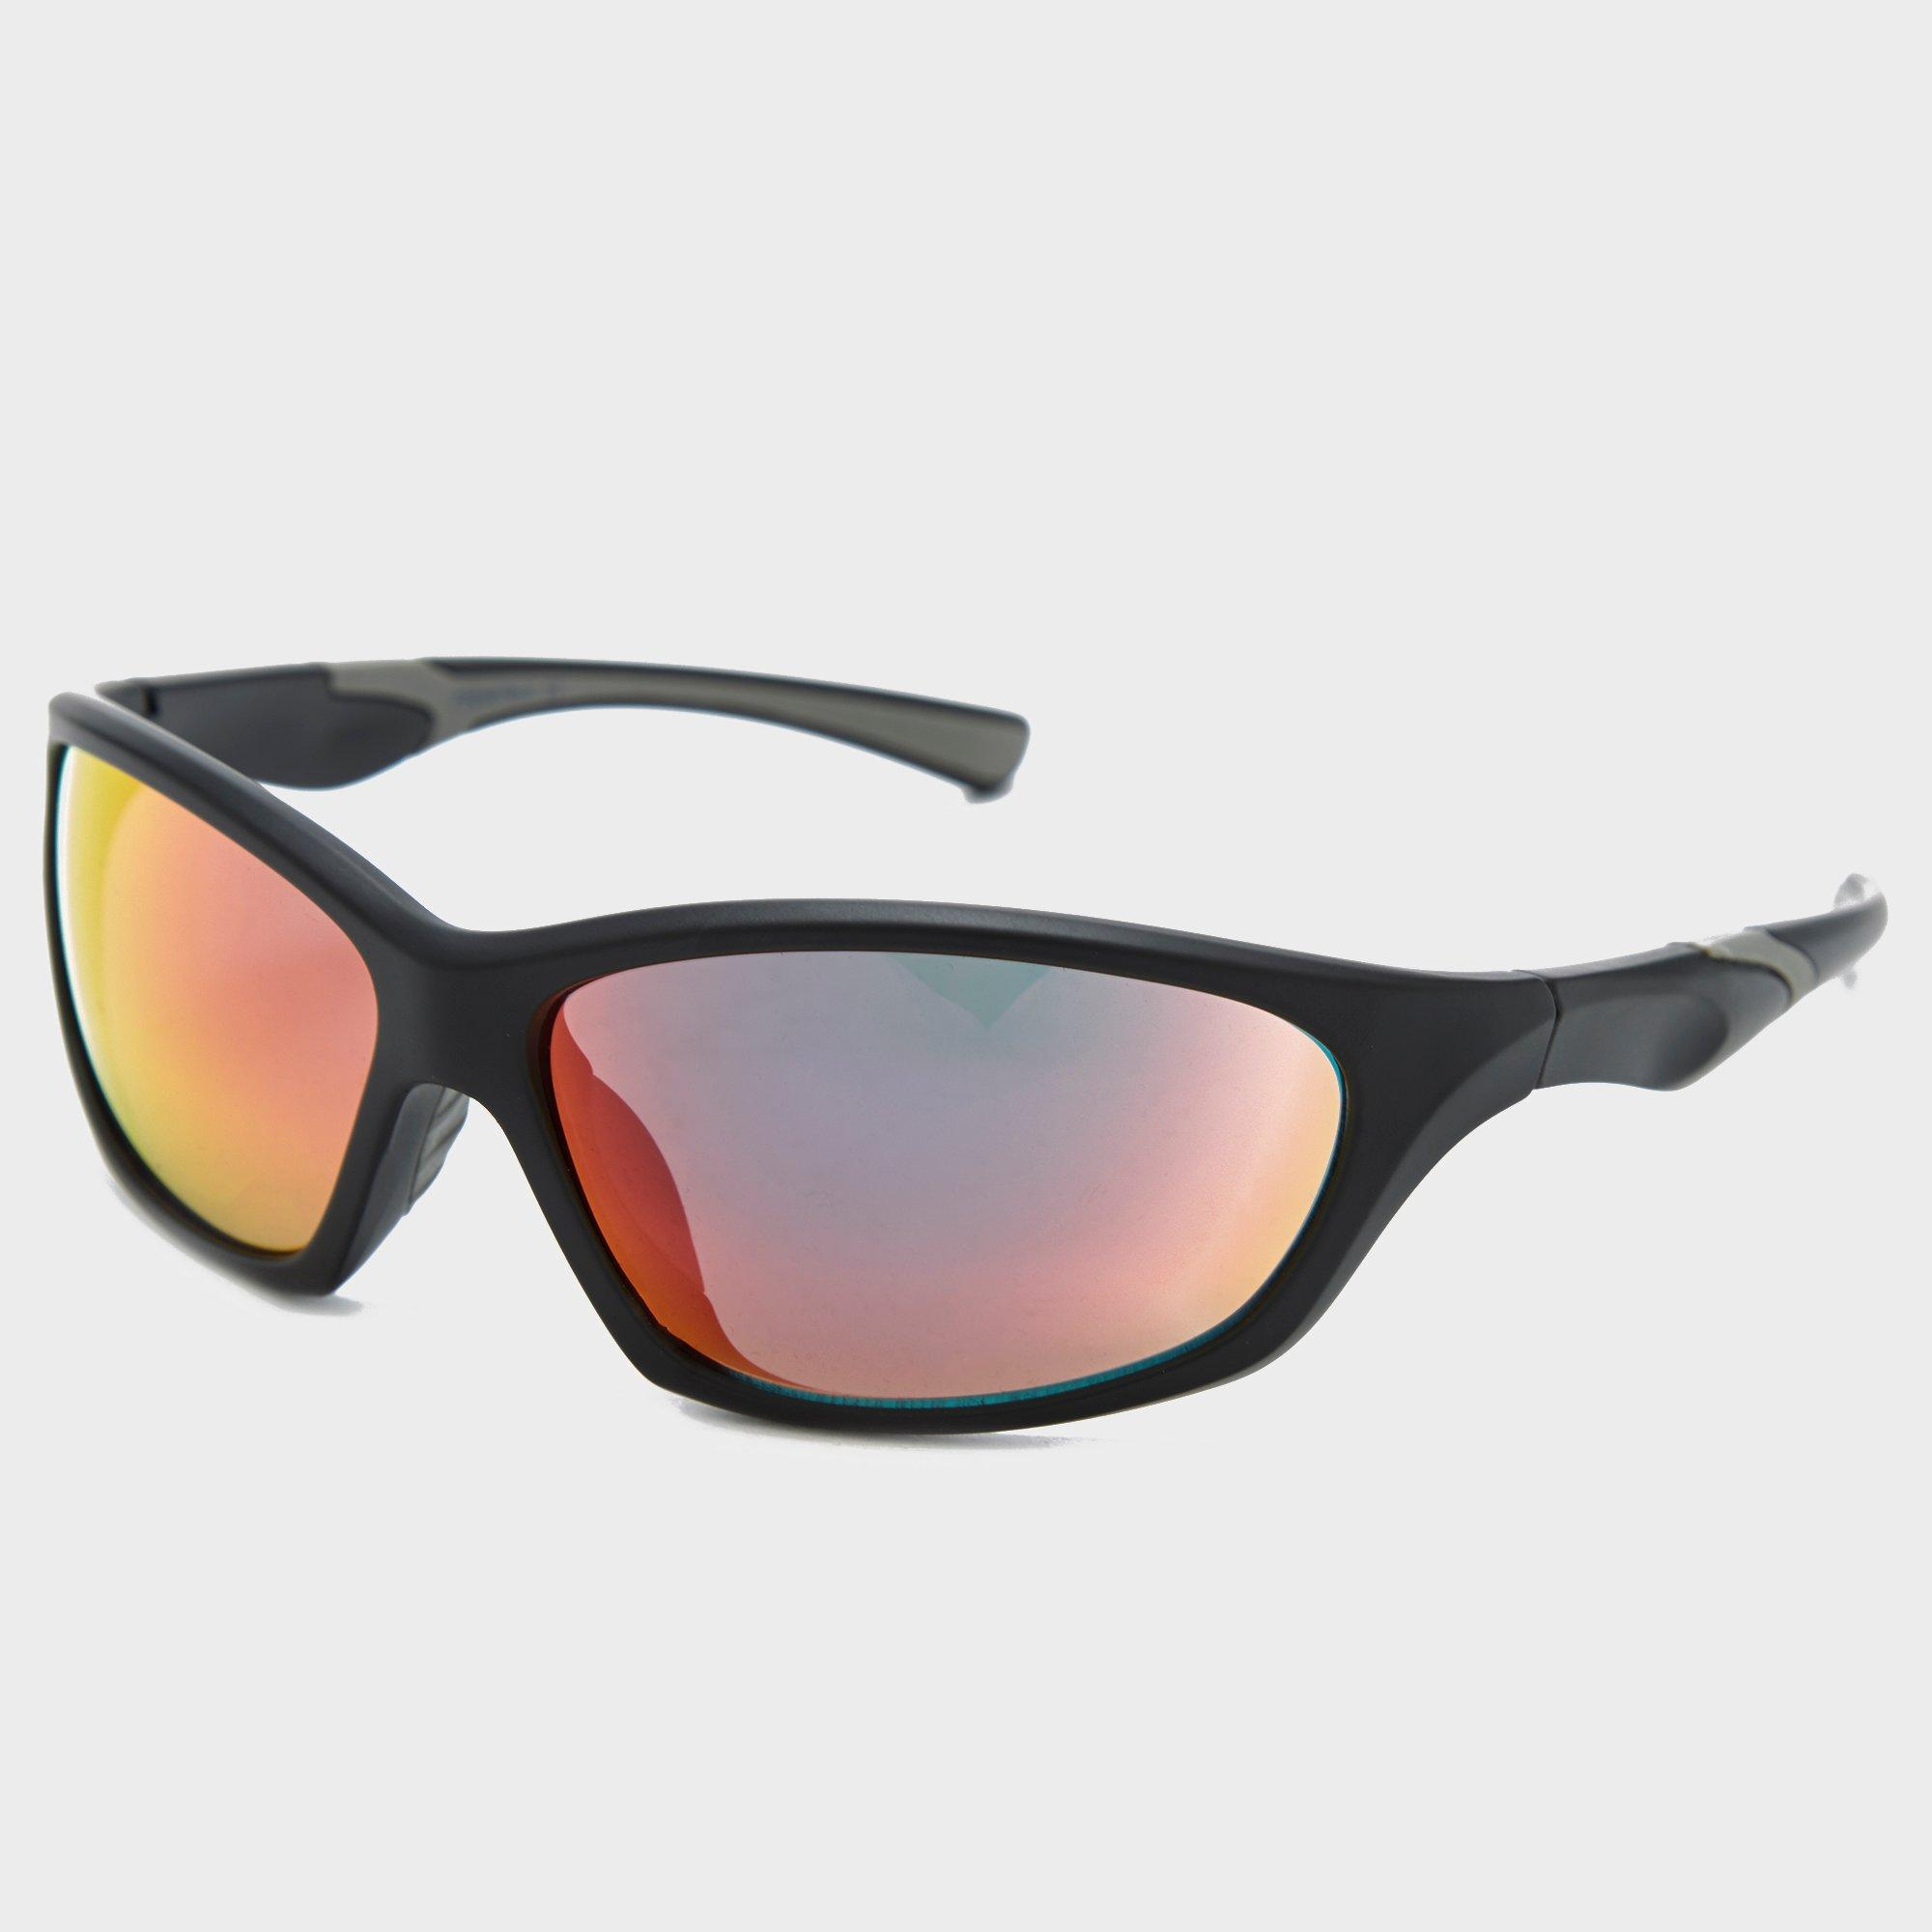 Peter Storm Men's Sport Square Wrap-Around Sunglasses, Black